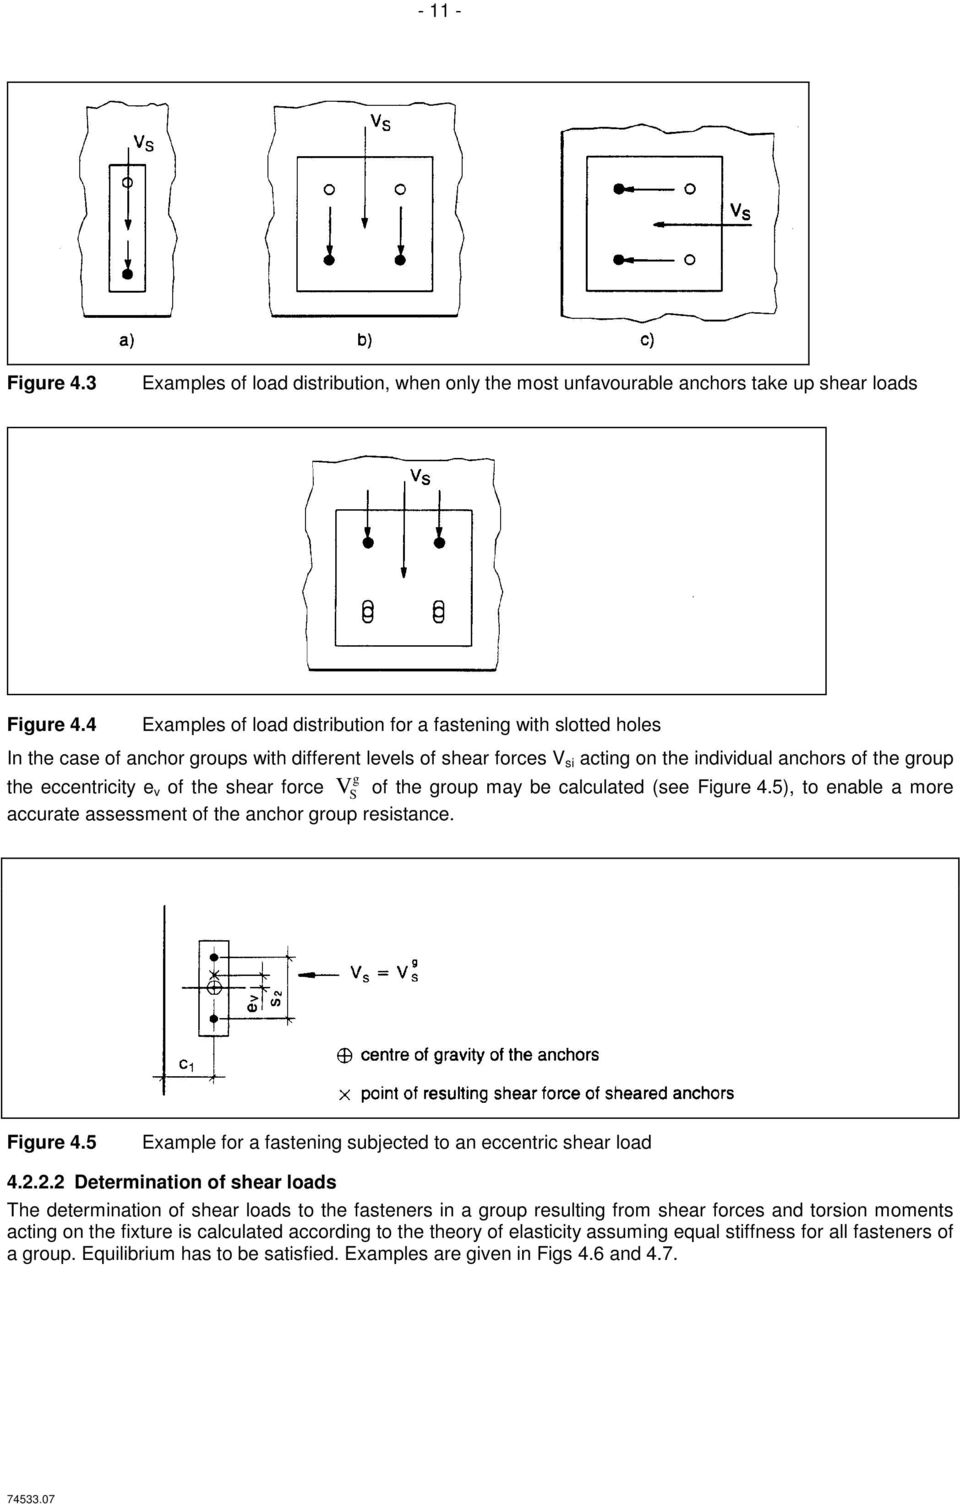 eccentricity e v of the shear force V S g of the group may be calculated (see Figure 4.5), to enable a more accurate assessment of the anchor group resistance. Figure 4.5 Example for a fastening subjected to an eccentric shear load 4.